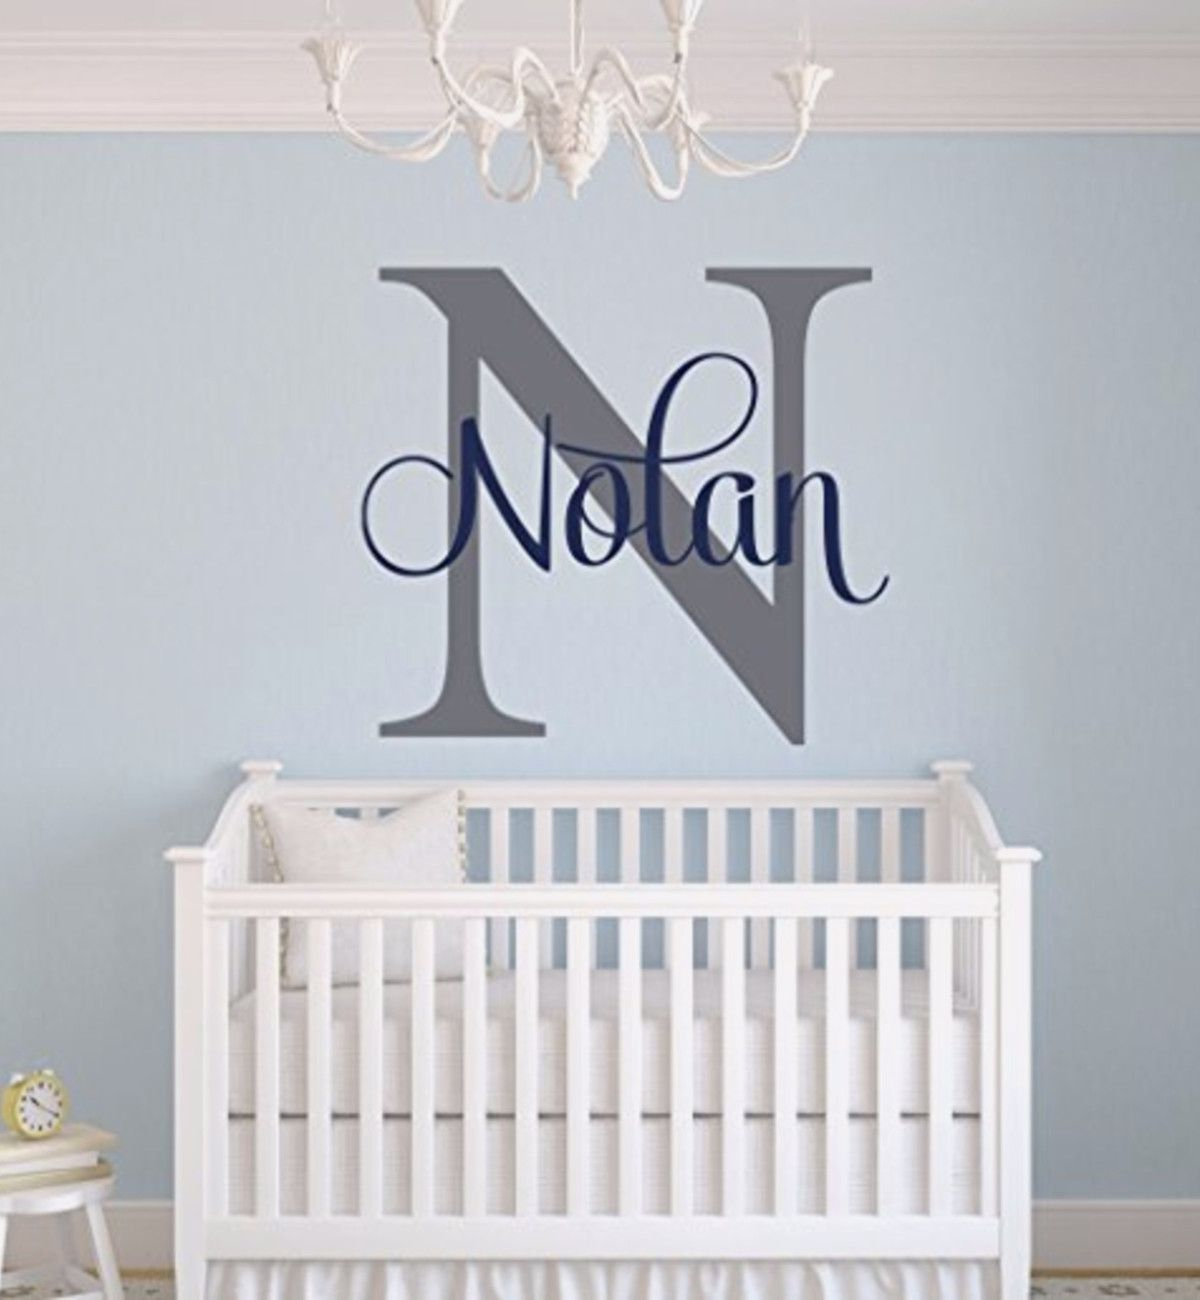 Unique Baby Boy Nursery Themes And Decor Ideas Nursery Wall Decor Boy Baby Boy Room Decor Boys Wall Decor